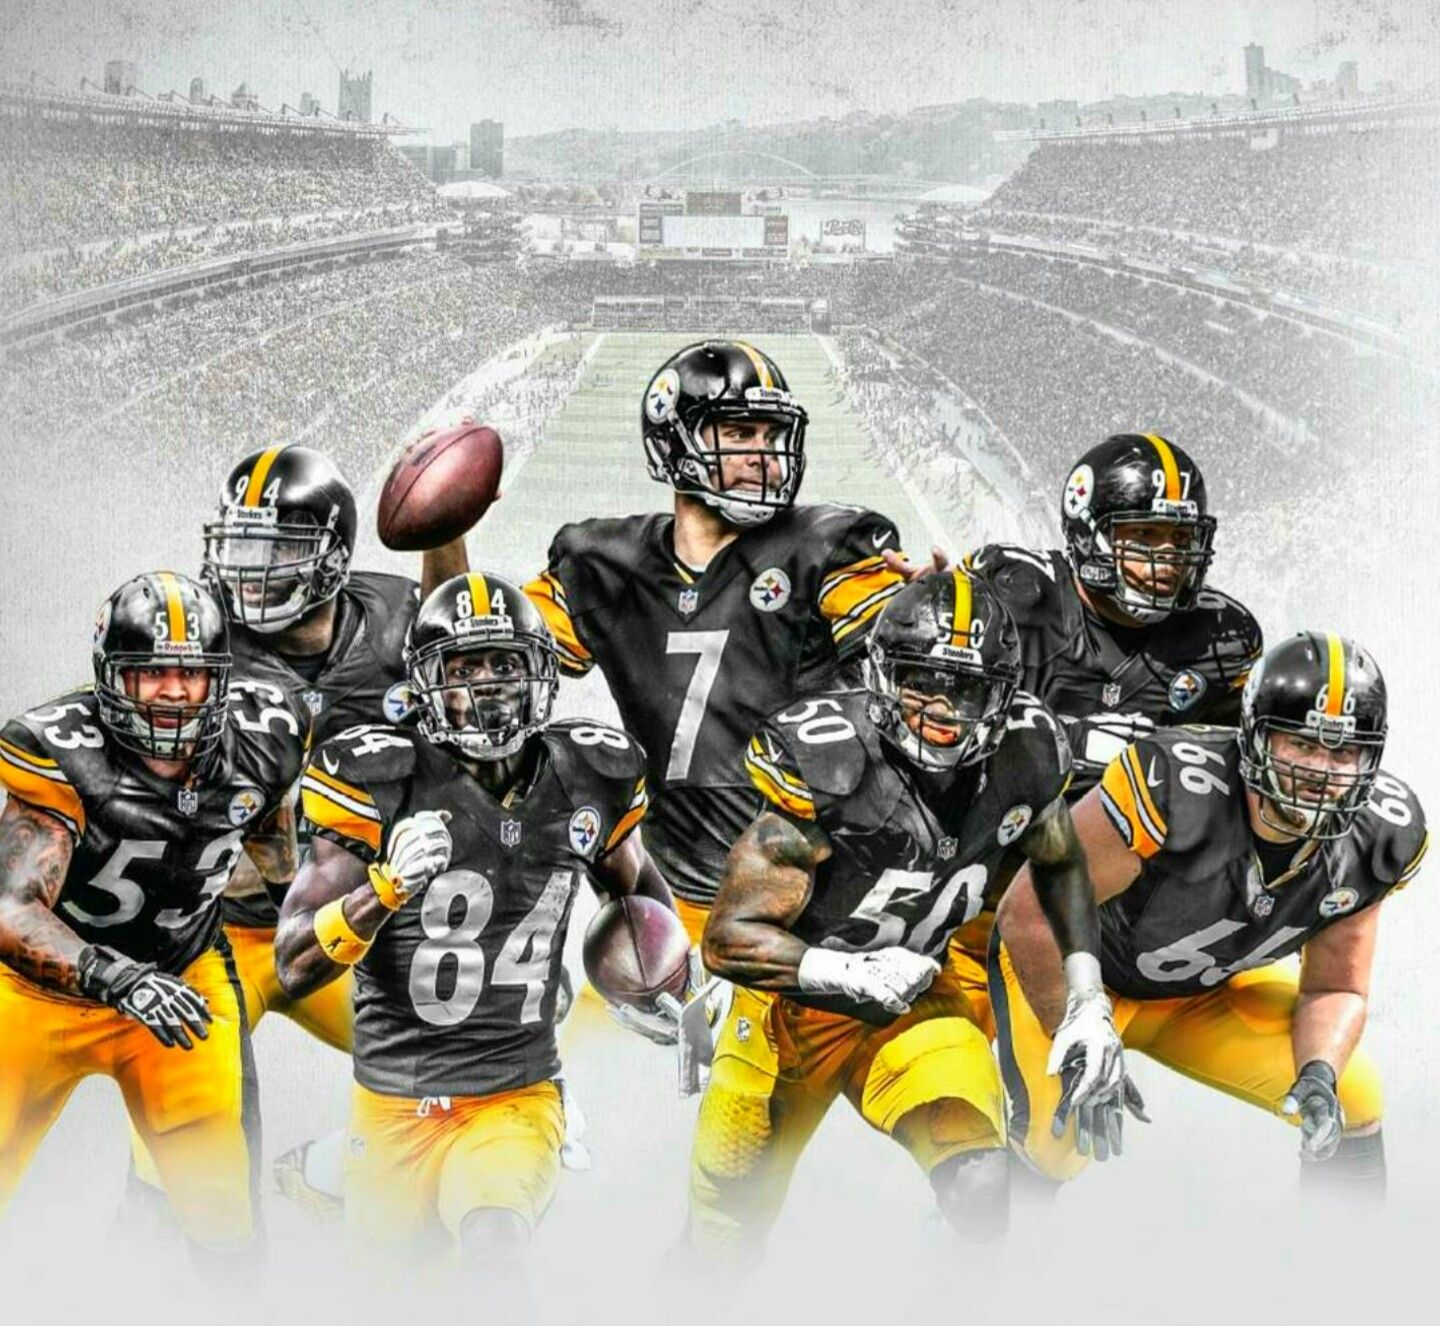 Pin by Sybildeckerdf on pittsburgh steelers funny (With